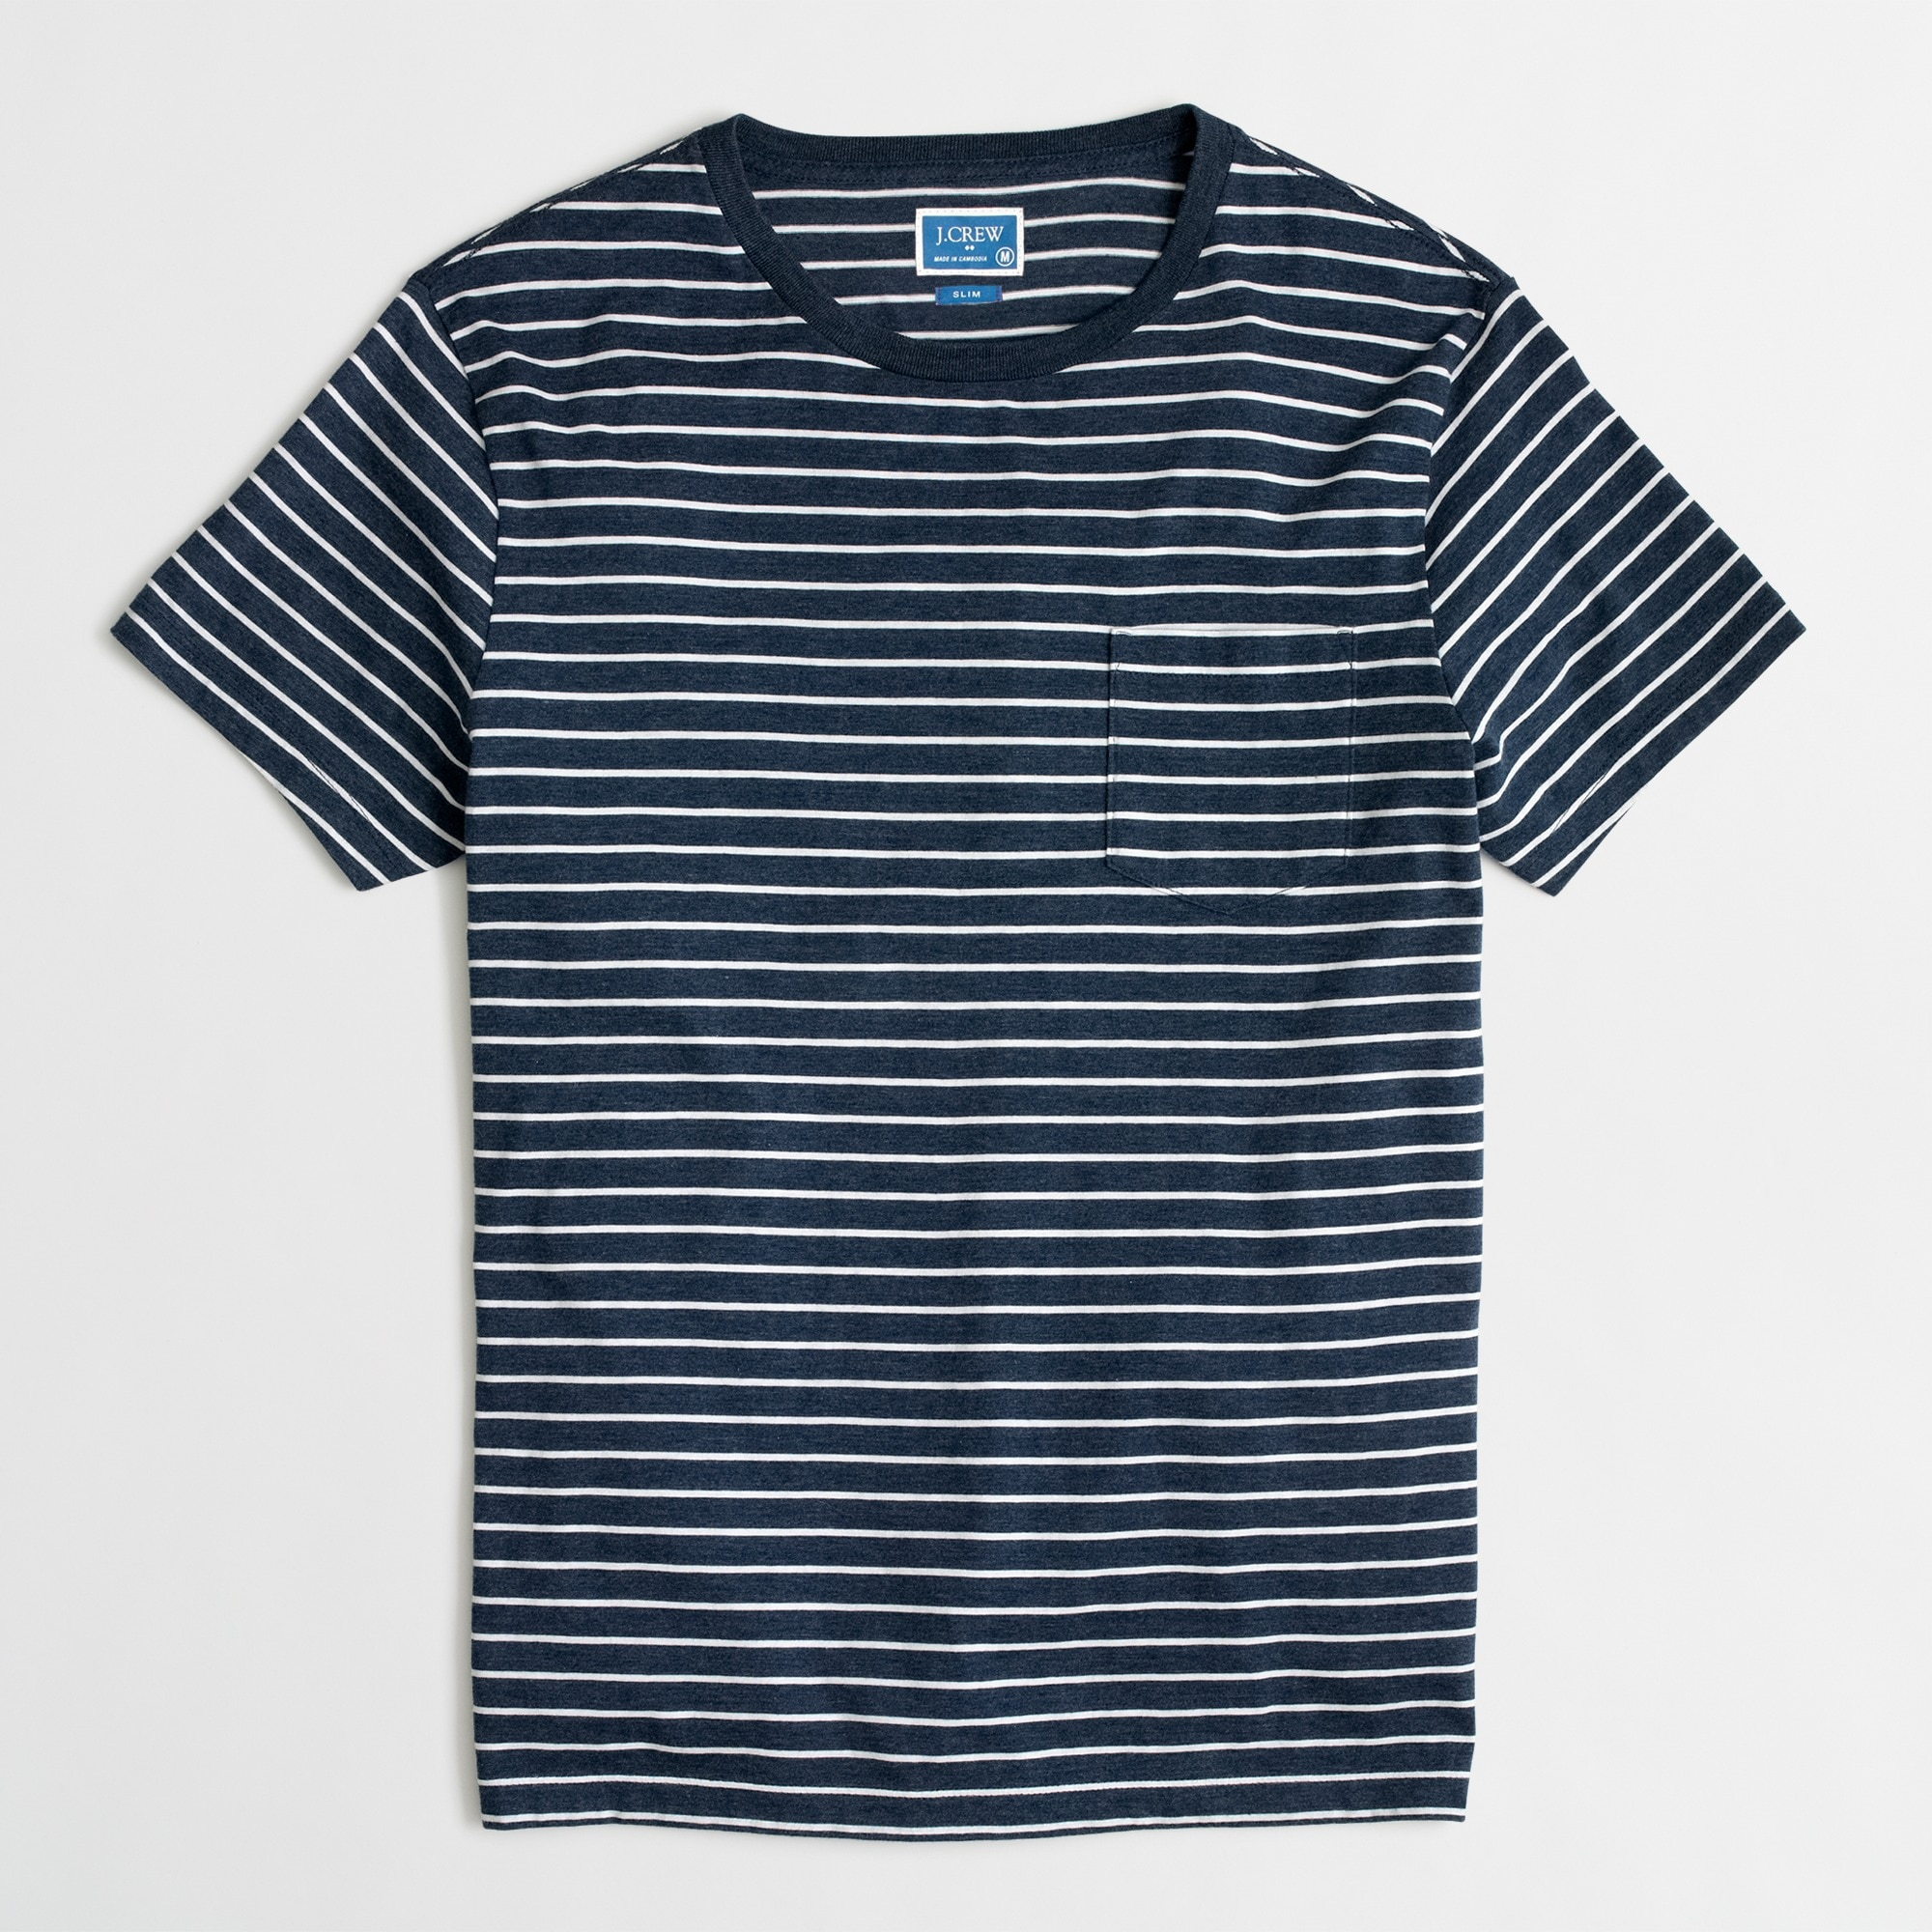 Image 2 for Tall slim Broken-in striped pocket T-shirt